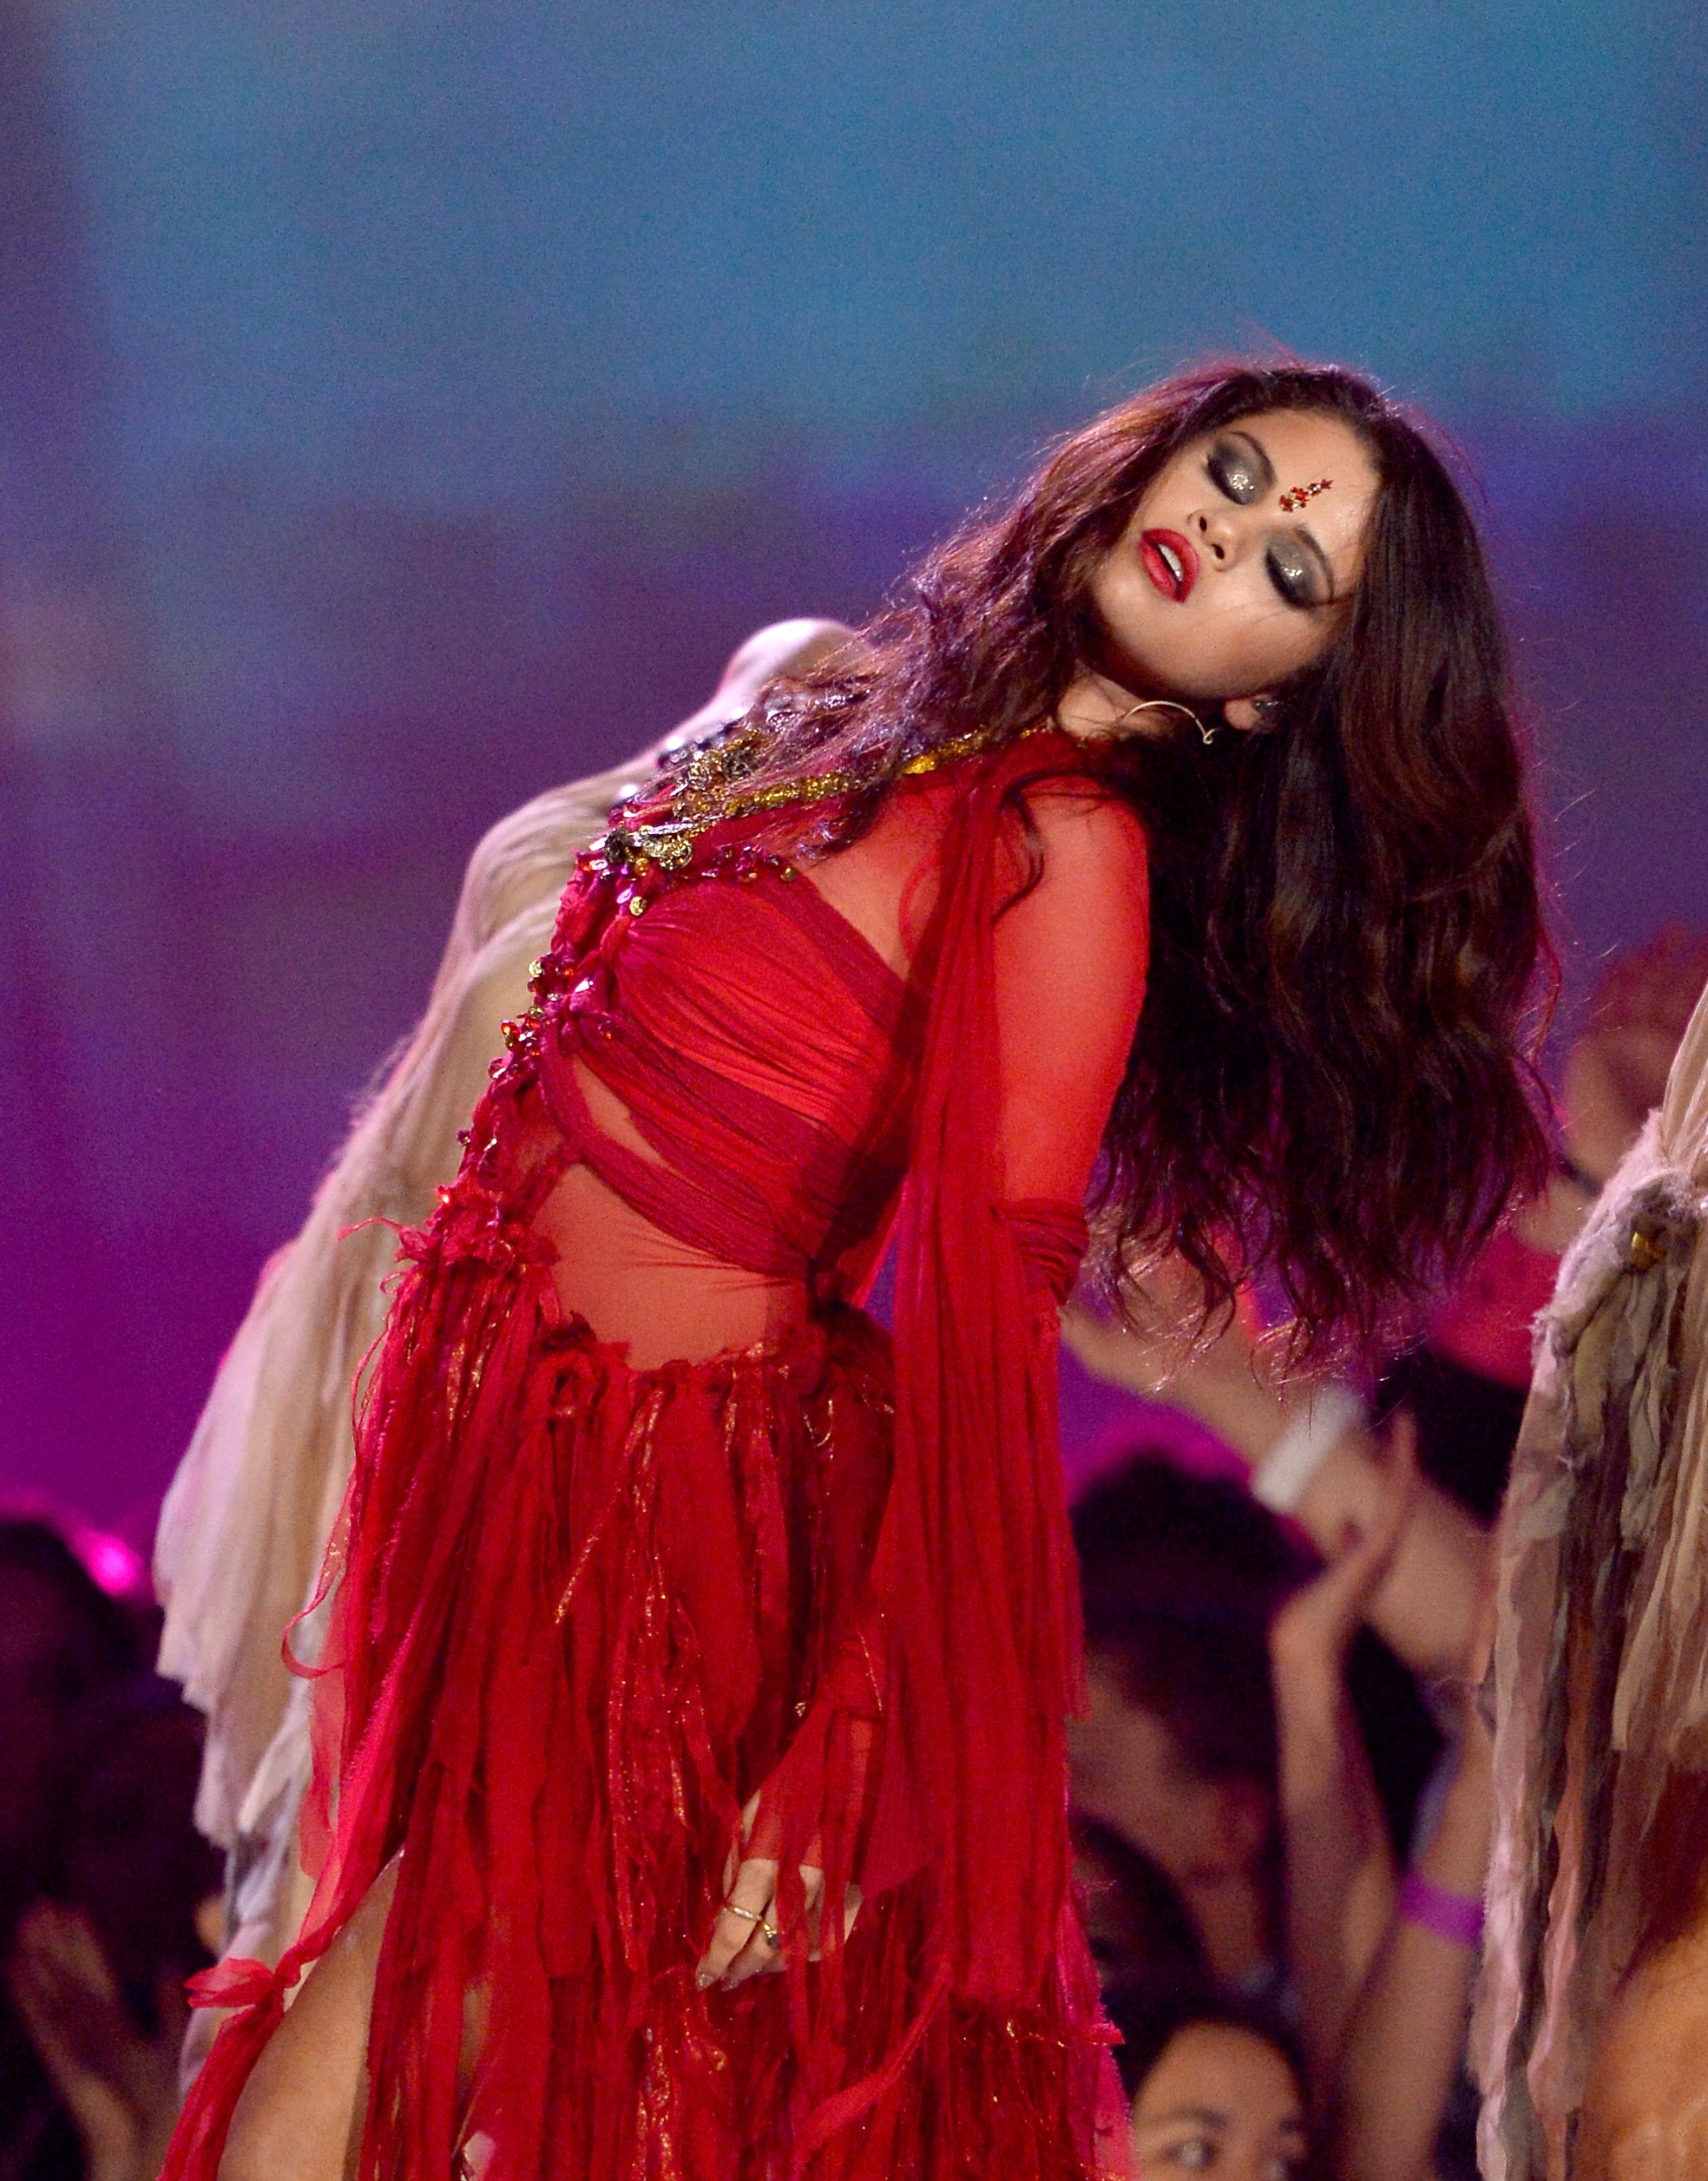 Penampilan Selena Gomez di MTV Movie Awards 2013 Foto: sawfirst.com